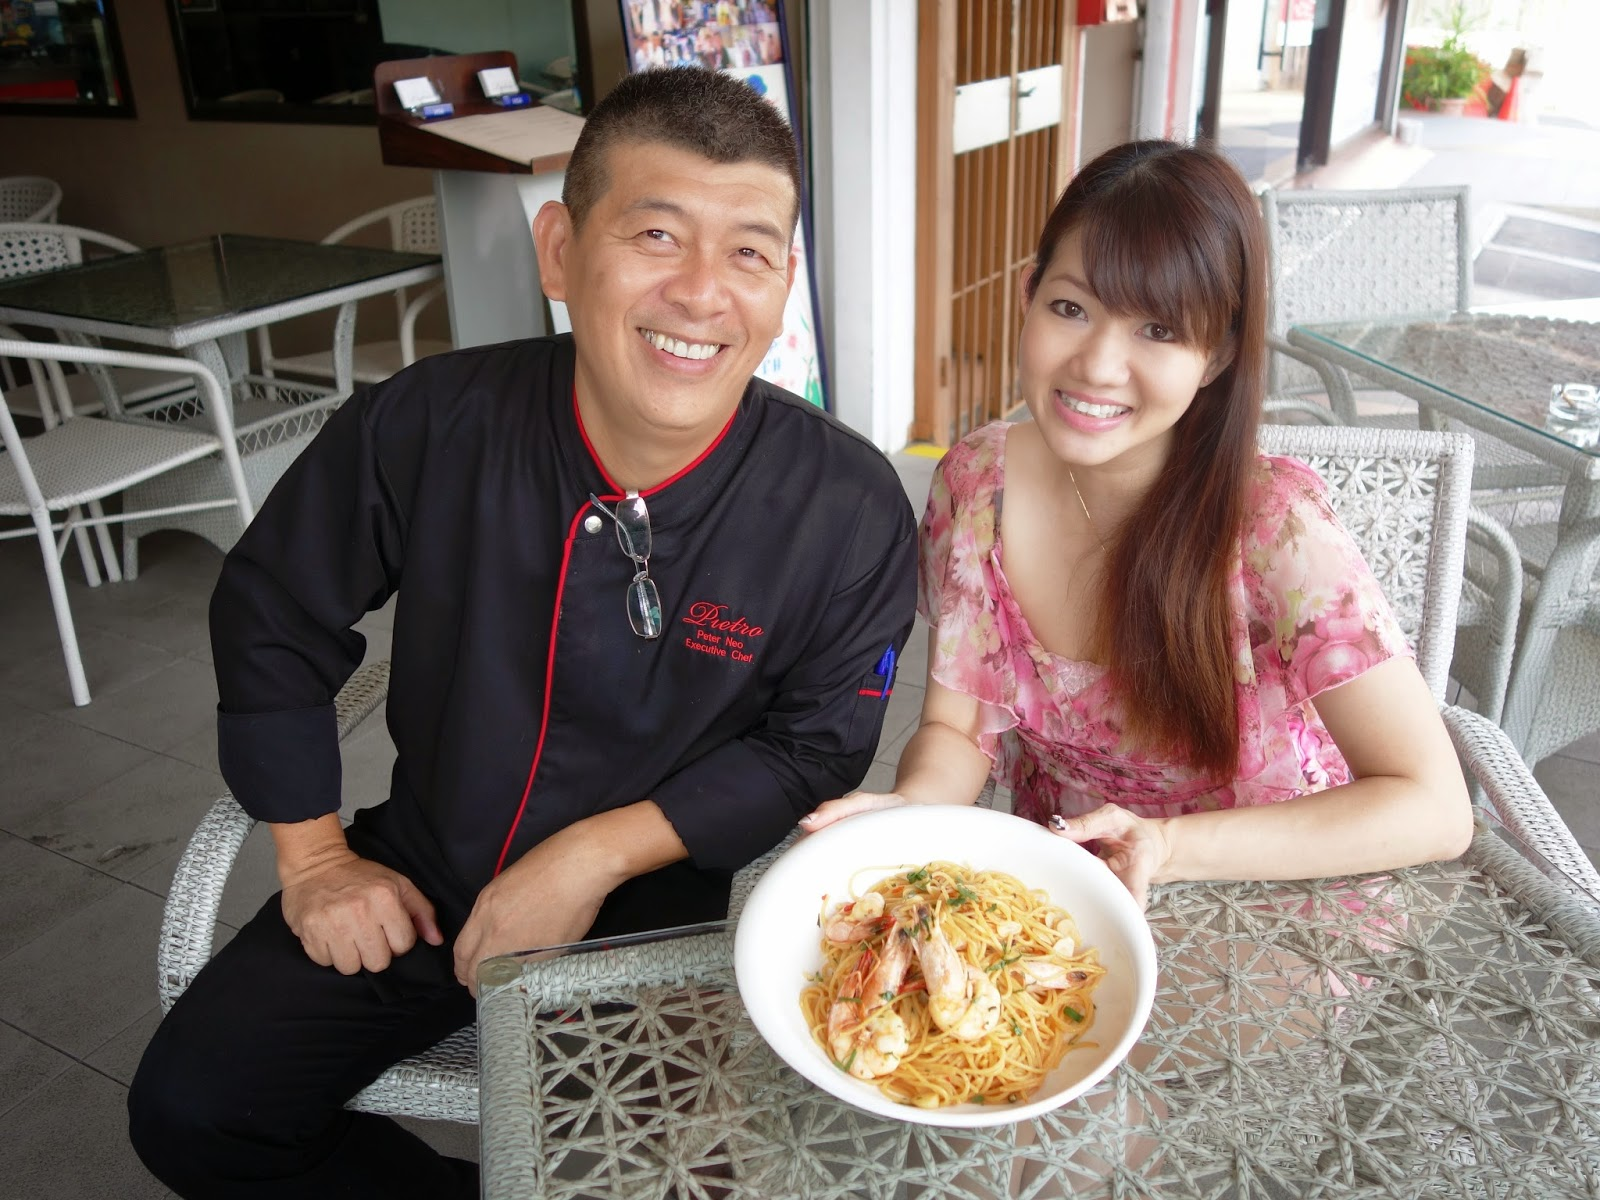 Pinkypiggu video blog pinkypiggus 2nd blog anniversary quest video blog pinkypiggus 2nd blog anniversary quest for best aglio olio with celebrity chef peter neo recipe included forumfinder Gallery